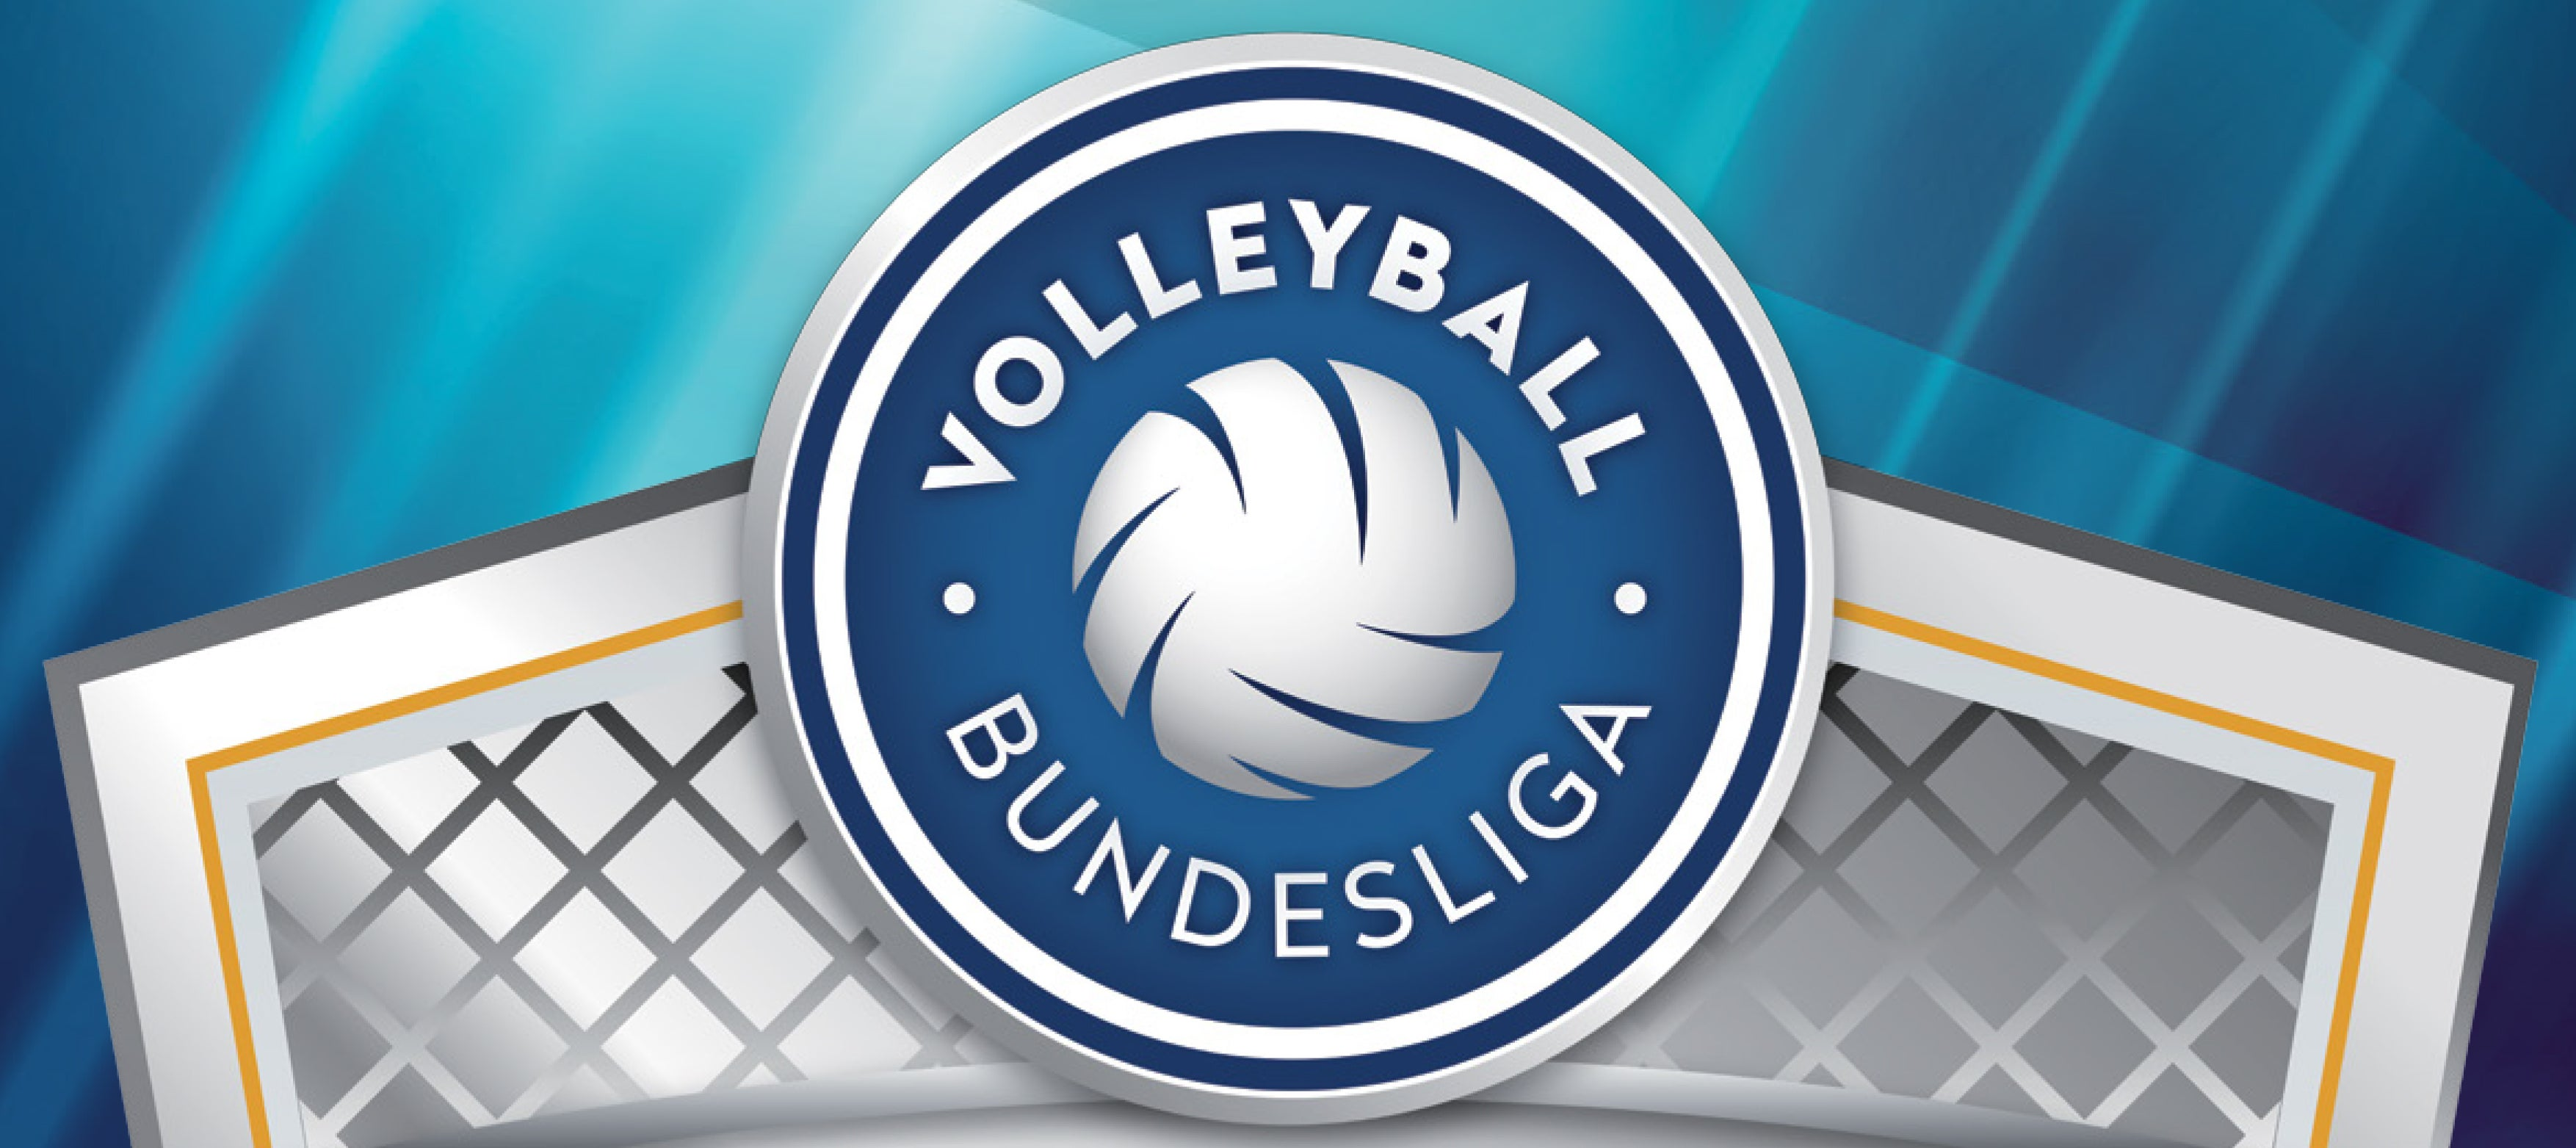 Volleyball-Website_Thumbnail.jpg